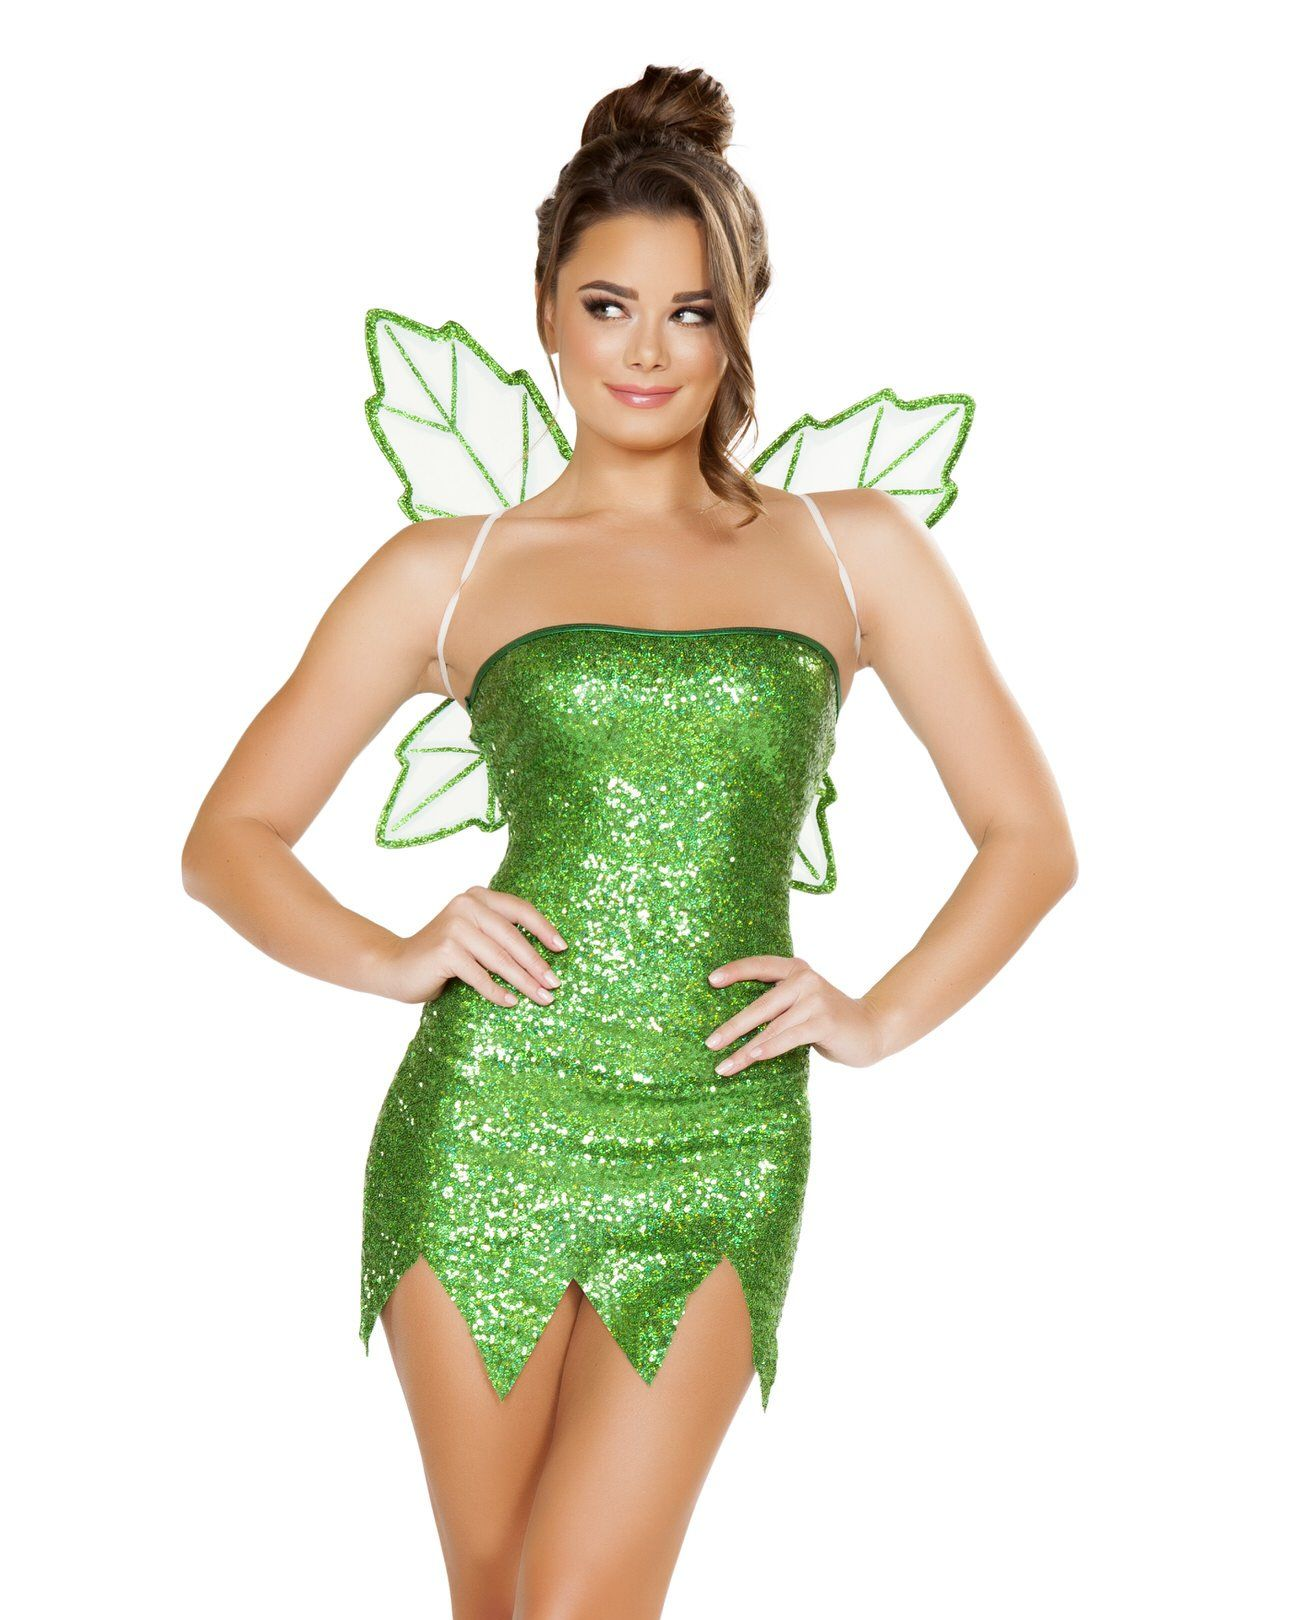 Sequin Tinkerbell Fairy Dress Wings Costume Fairy Halloween Costumes Tinkerbell Halloween Costume Costumes For Women [ 1620 x 1296 Pixel ]